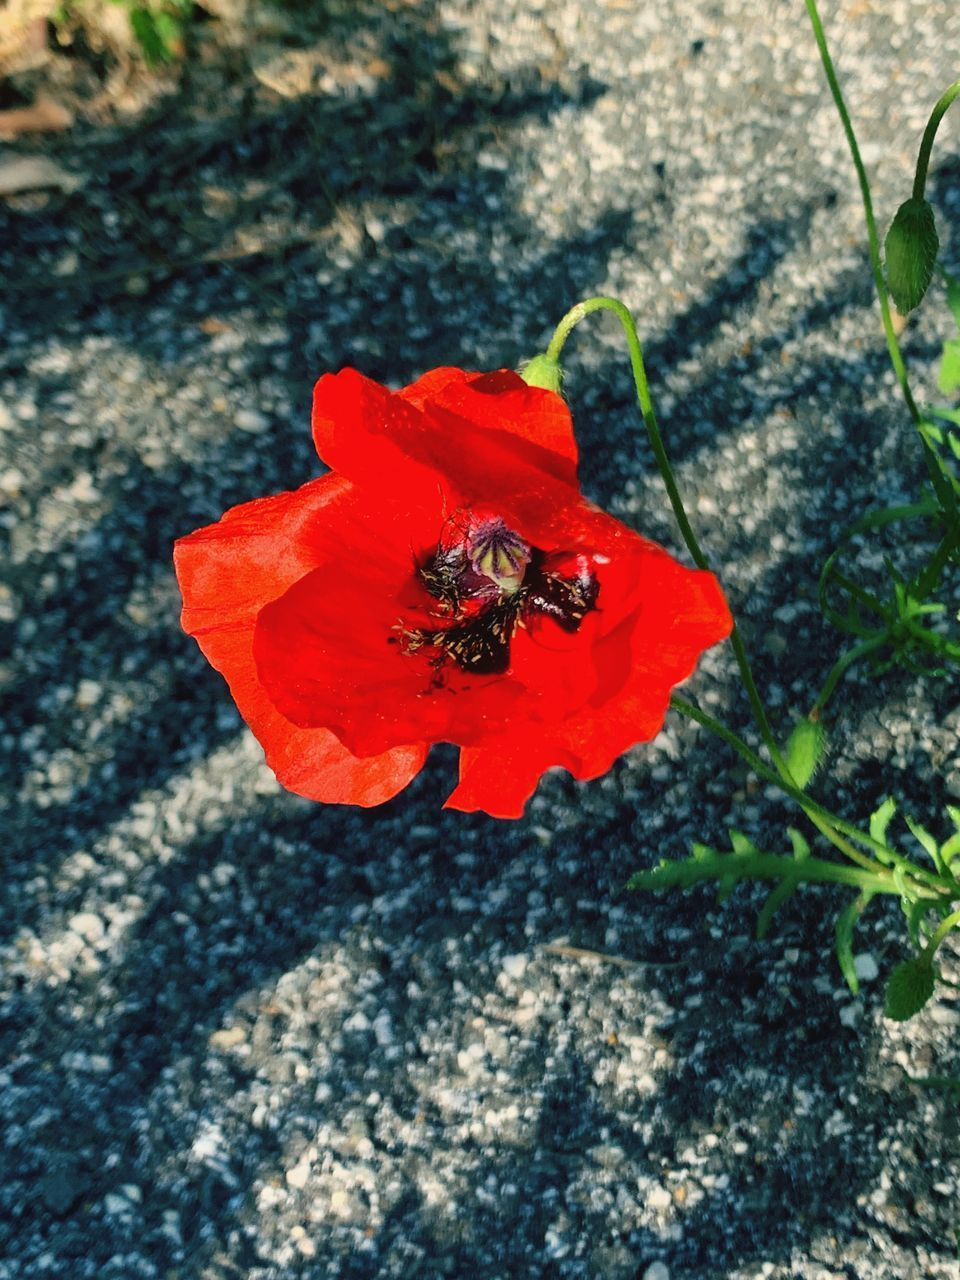 animals in the wild, invertebrate, insect, red, animal wildlife, animal, animal themes, high angle view, flower, beauty in nature, close-up, nature, flowering plant, petal, day, one animal, fragility, plant, no people, vulnerability, outdoors, flower head, pollen, pollination